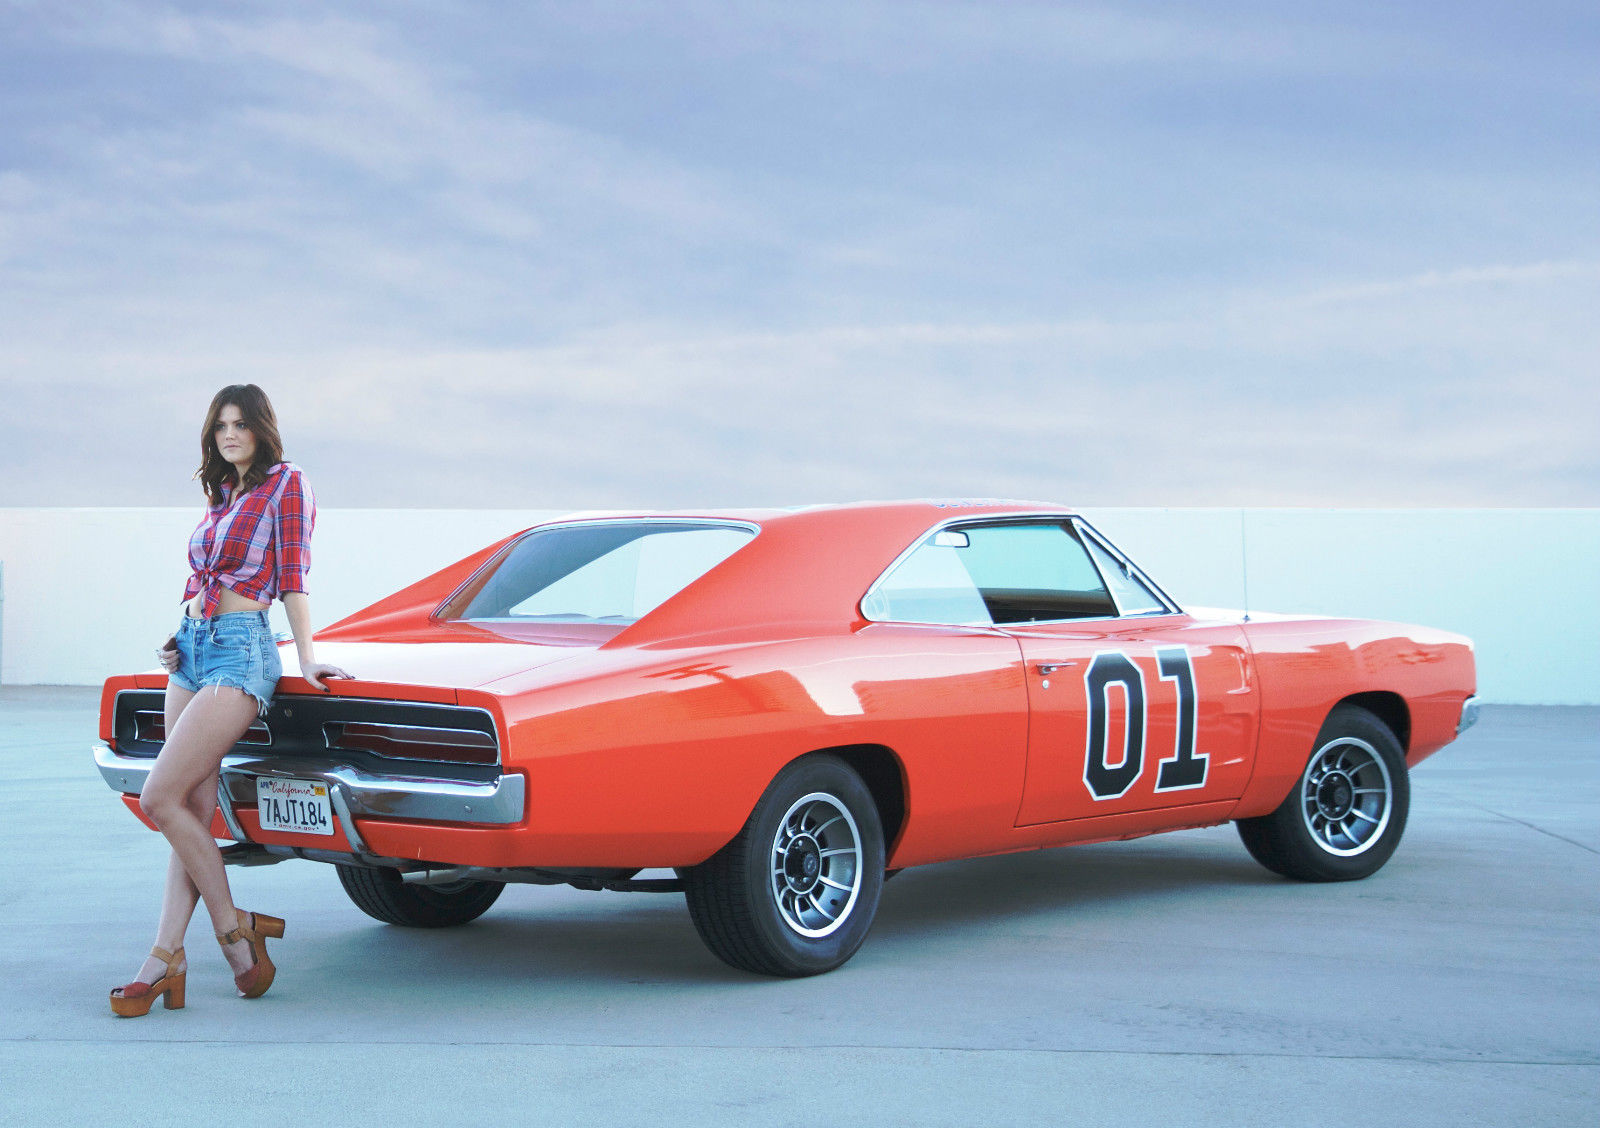 Street Racing Cars Wallpaper With Girls 1969 Dodge Charger Quot General Lee Quot Dukes Of Hazzard For Sale